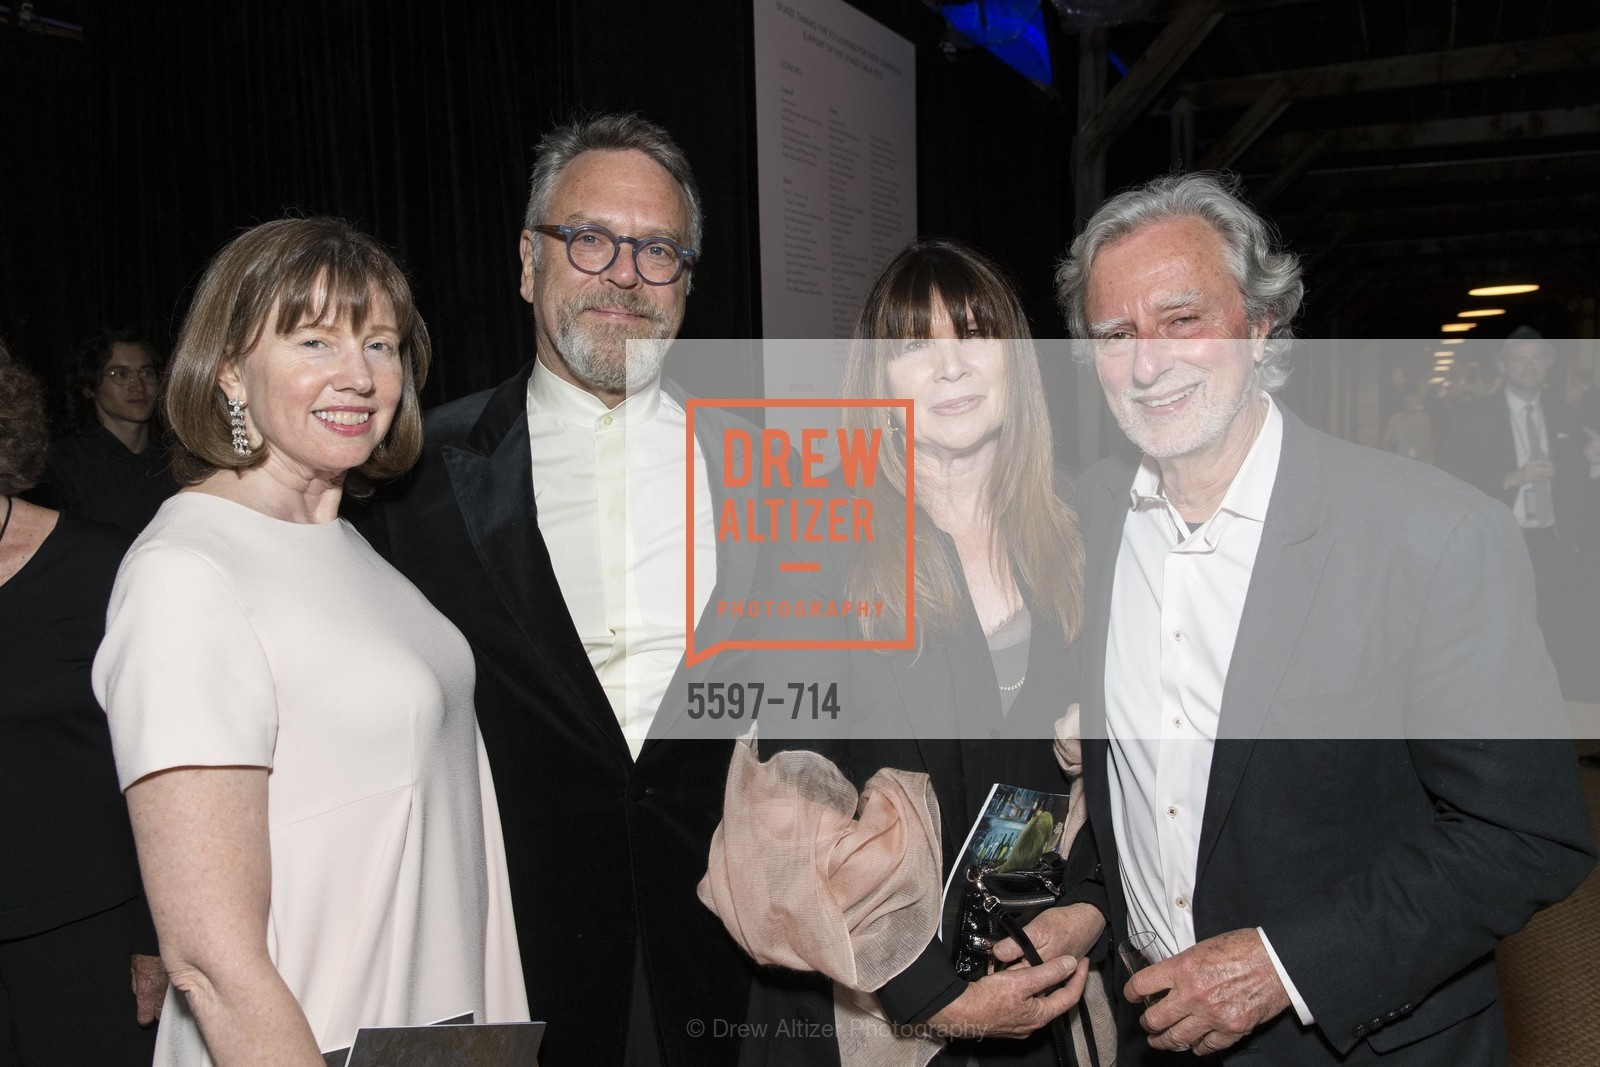 Leslie Berriman, Nion McEvoy, Kelly Sultan, Philip Kaufman, SFJAZZ Gala 2015 Honors Joni Mitchell with Lifetime Achievement Award, US, May 9th, 2015,Drew Altizer, Drew Altizer Photography, full-service agency, private events, San Francisco photographer, photographer california